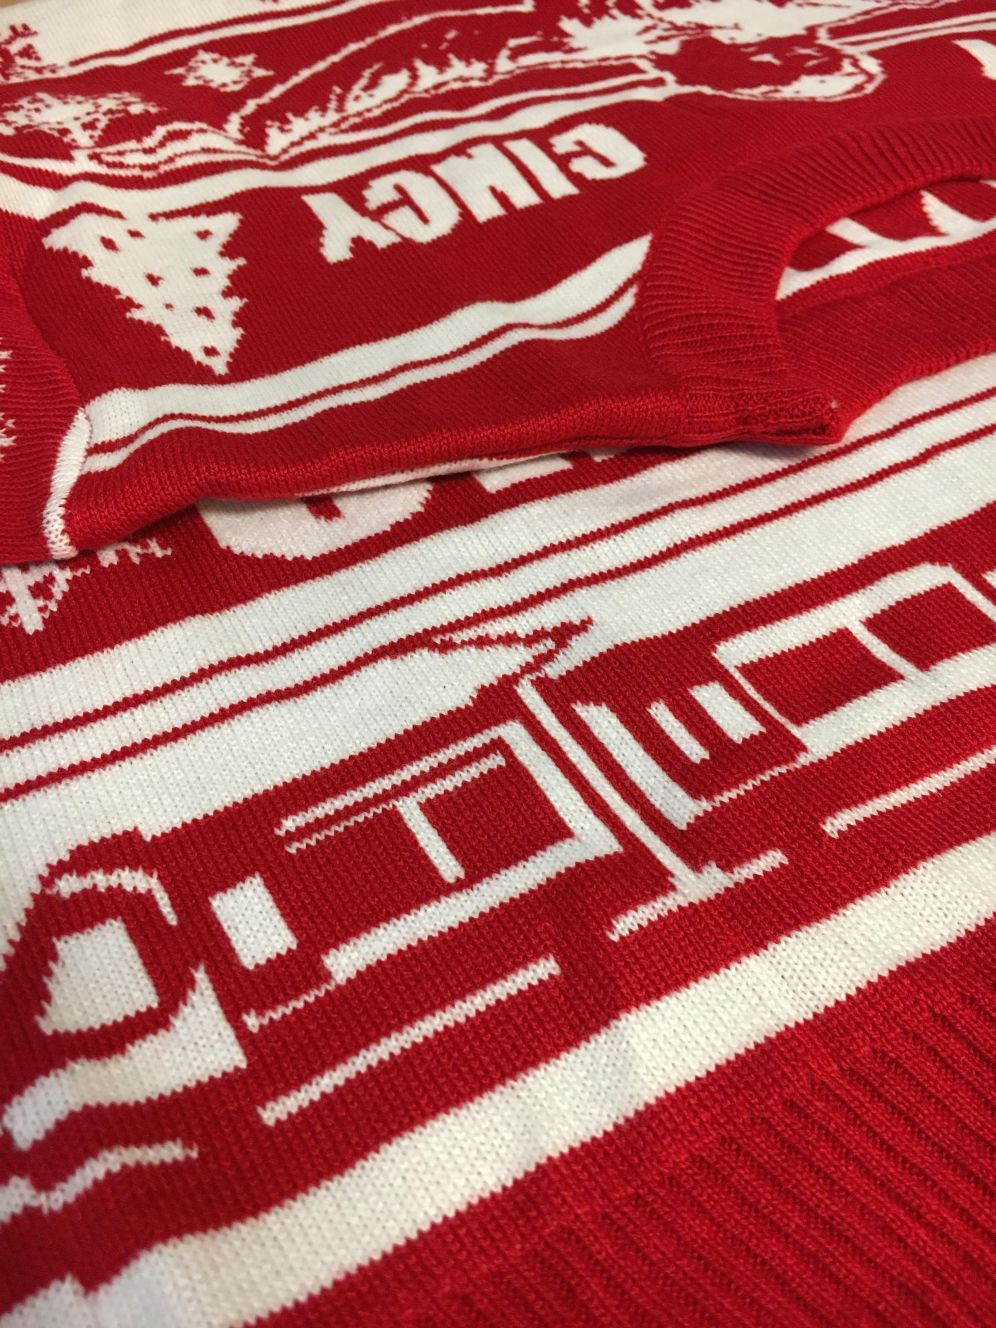 Cincy Shirts Christmas sweater, featuring the streetcar